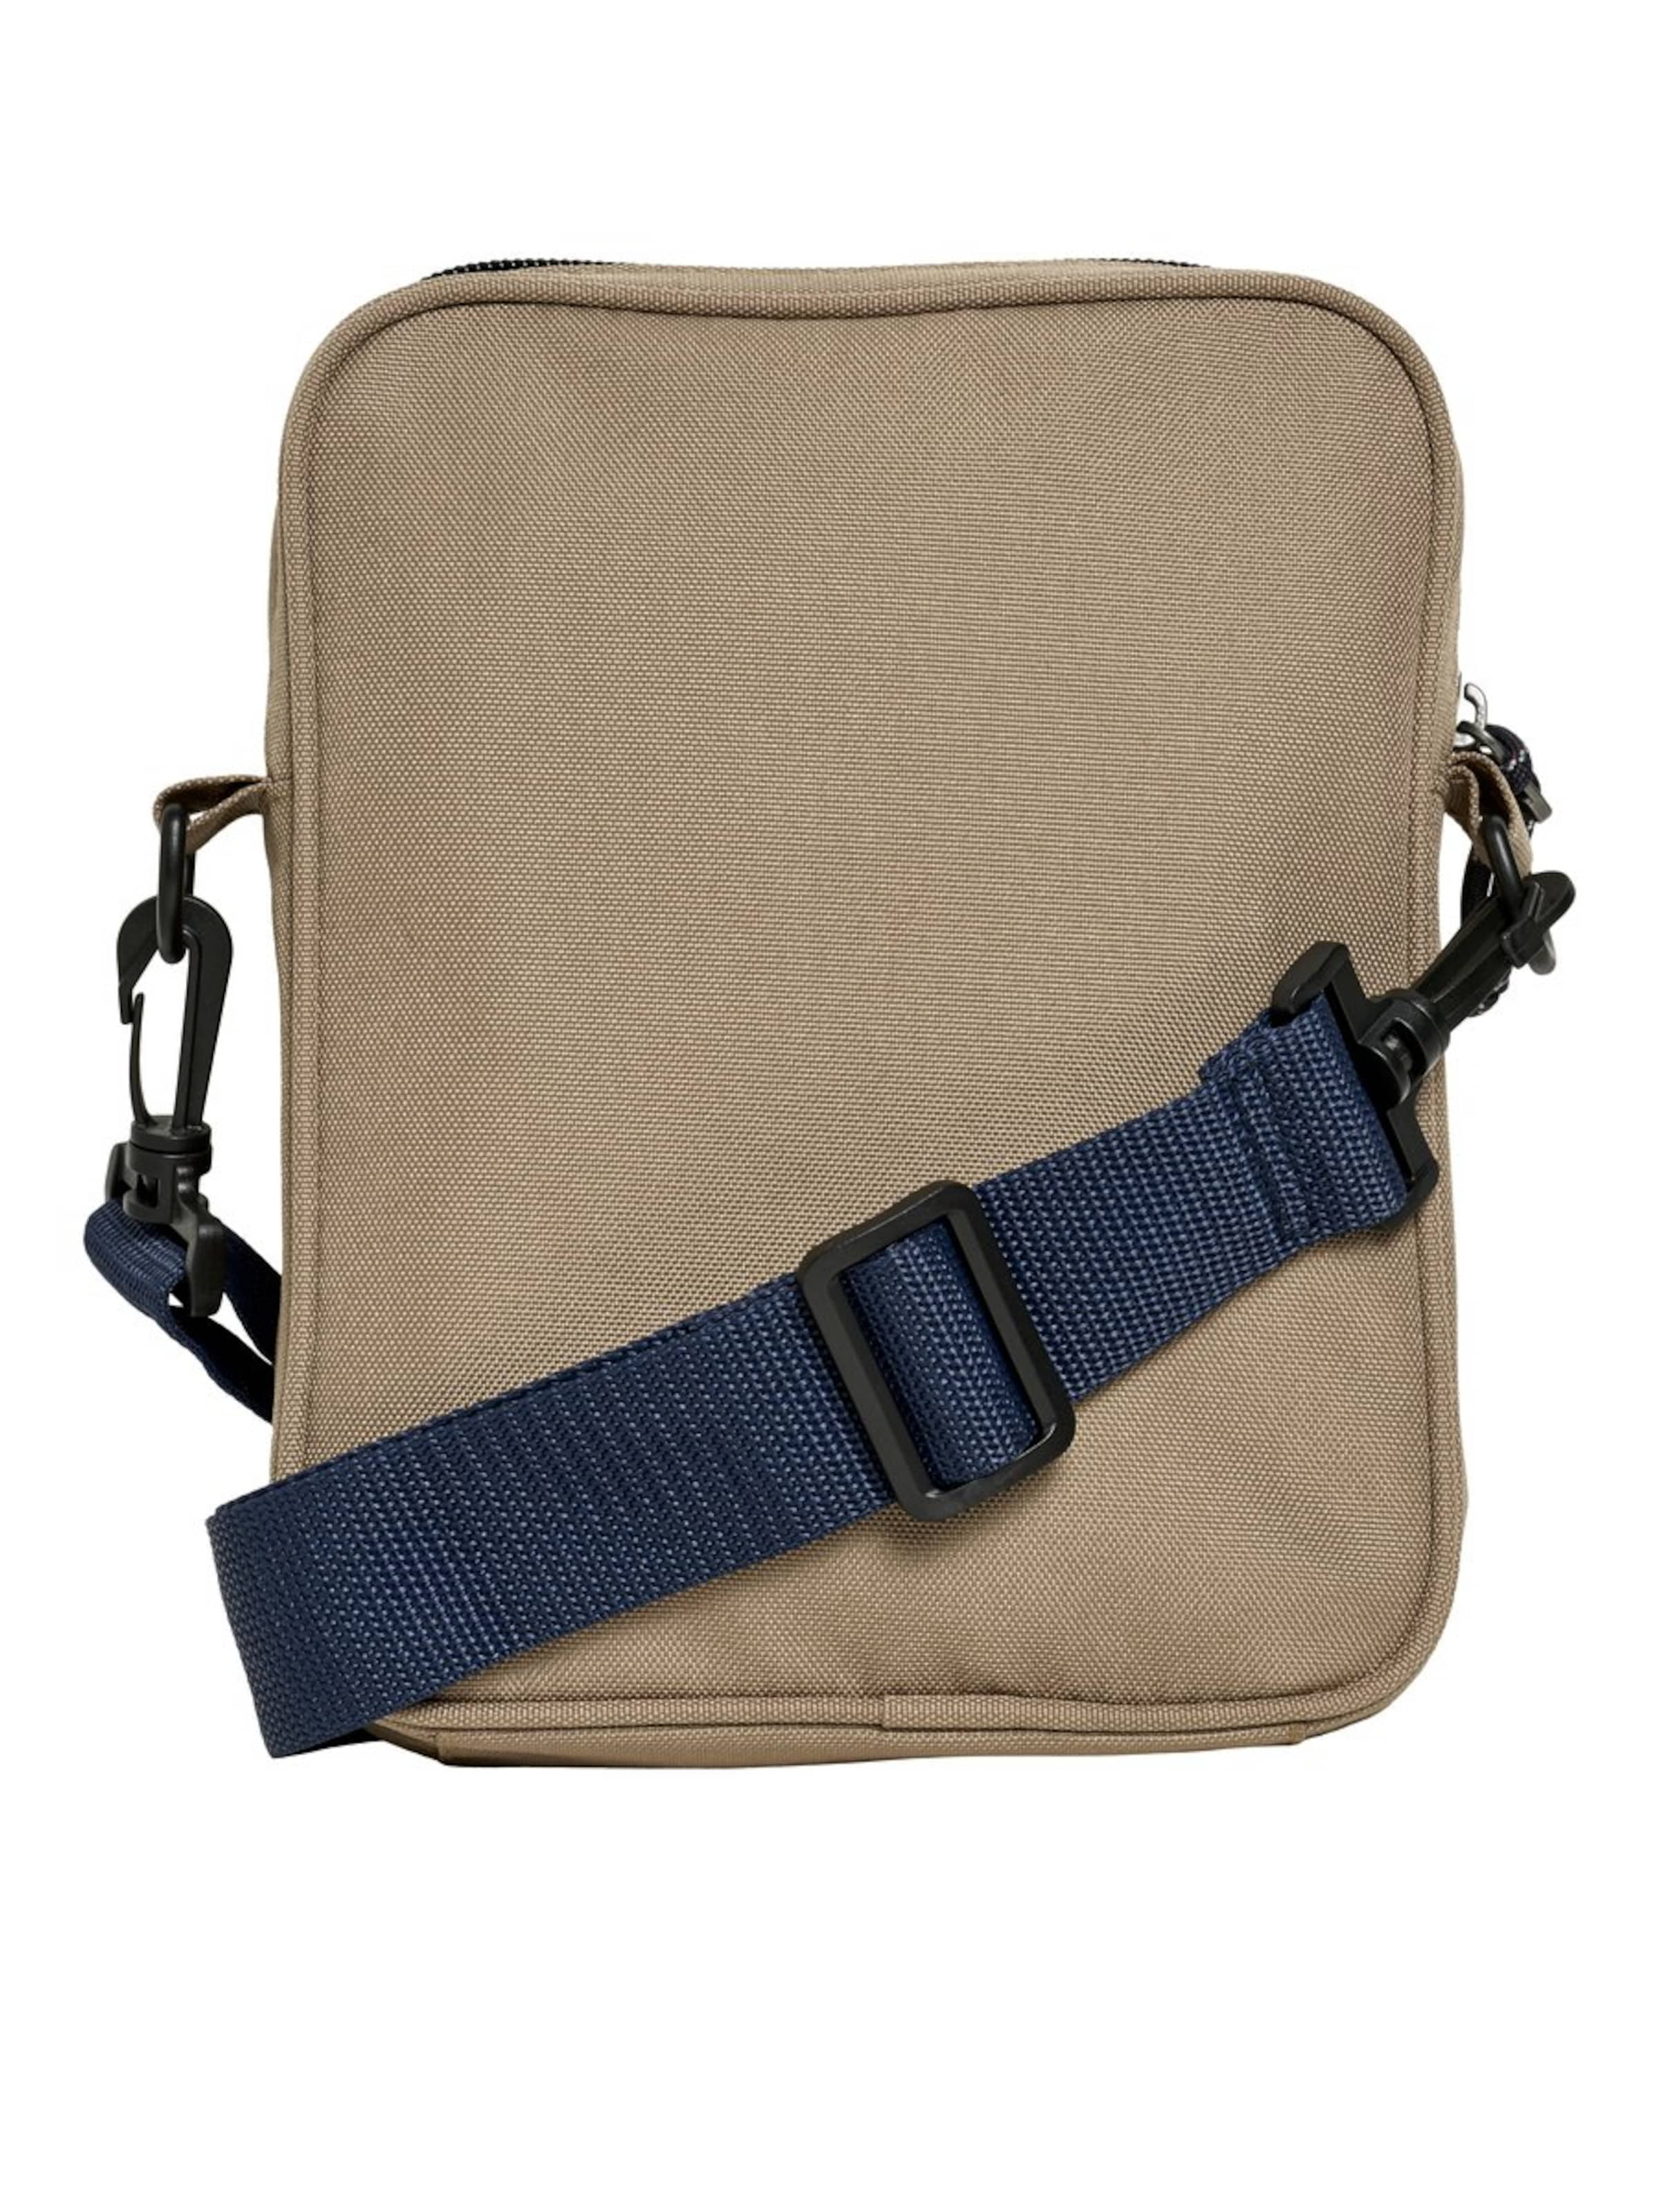 Tasche Jones NavyHellbraun Slingbag' Jackamp; 'christian In KcFJl1T